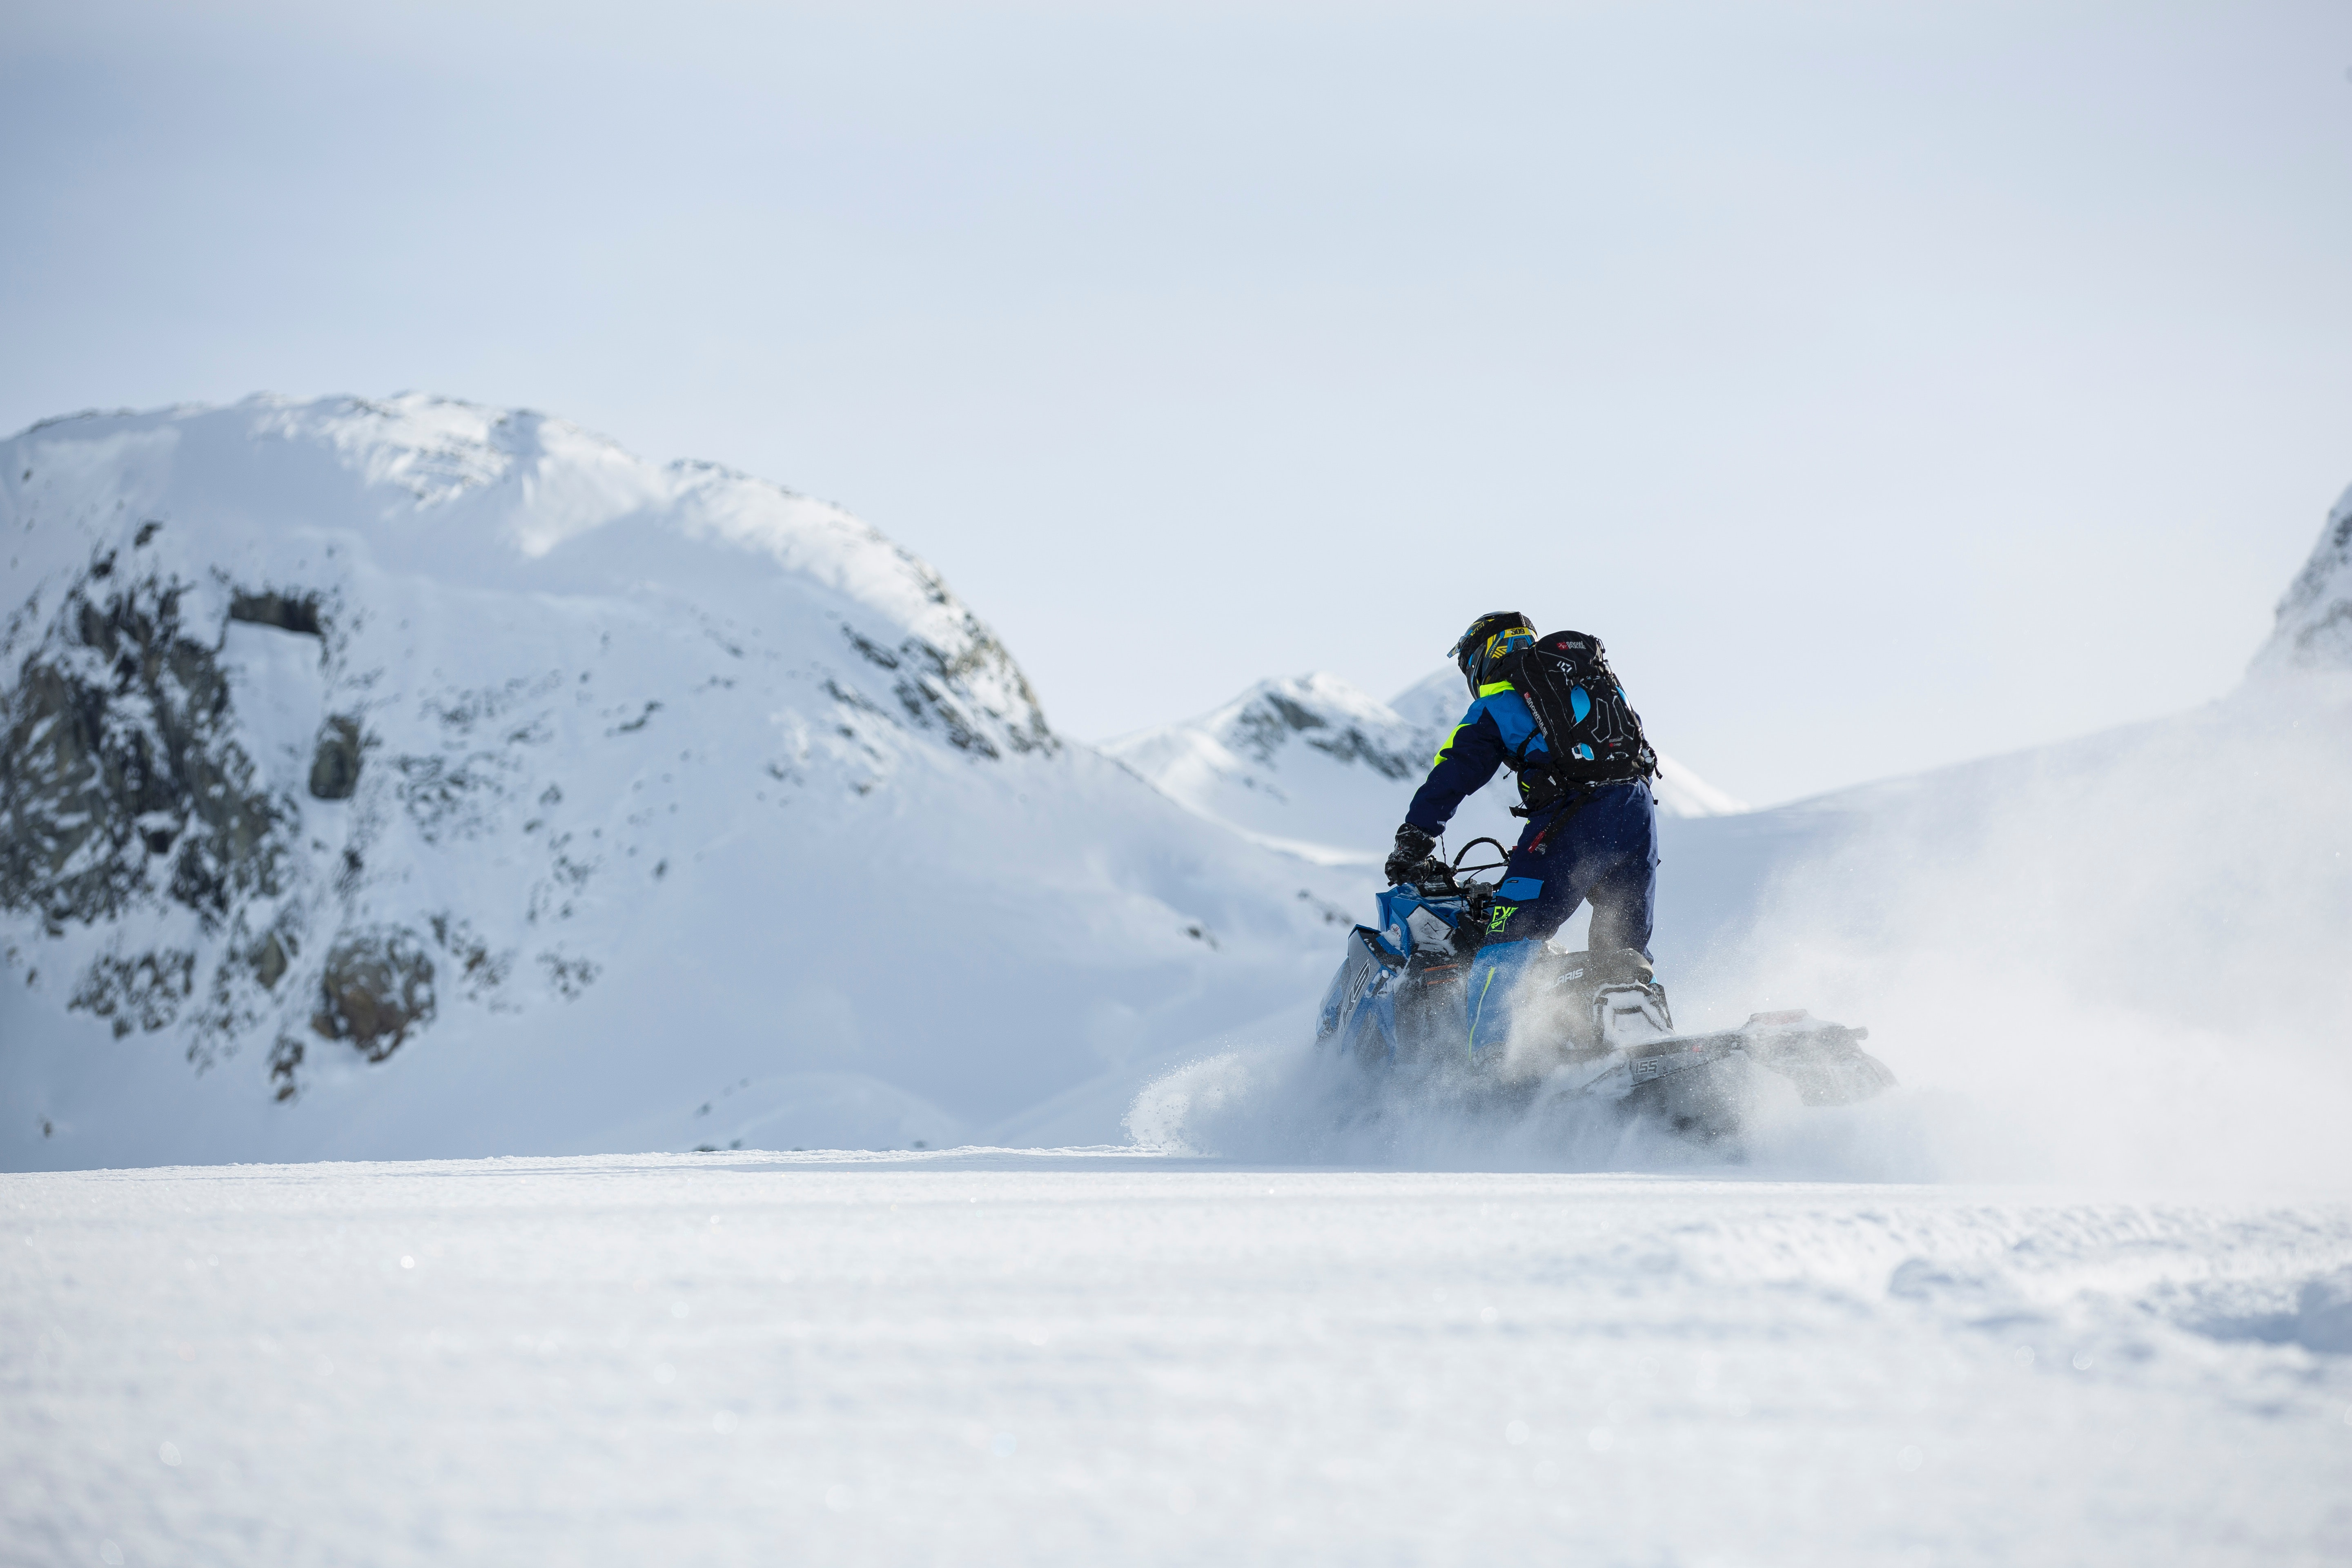 Person Riding on Snowmobile during Winter, Ski slope, Skier, Snow, Snow capped mountain, HQ Photo